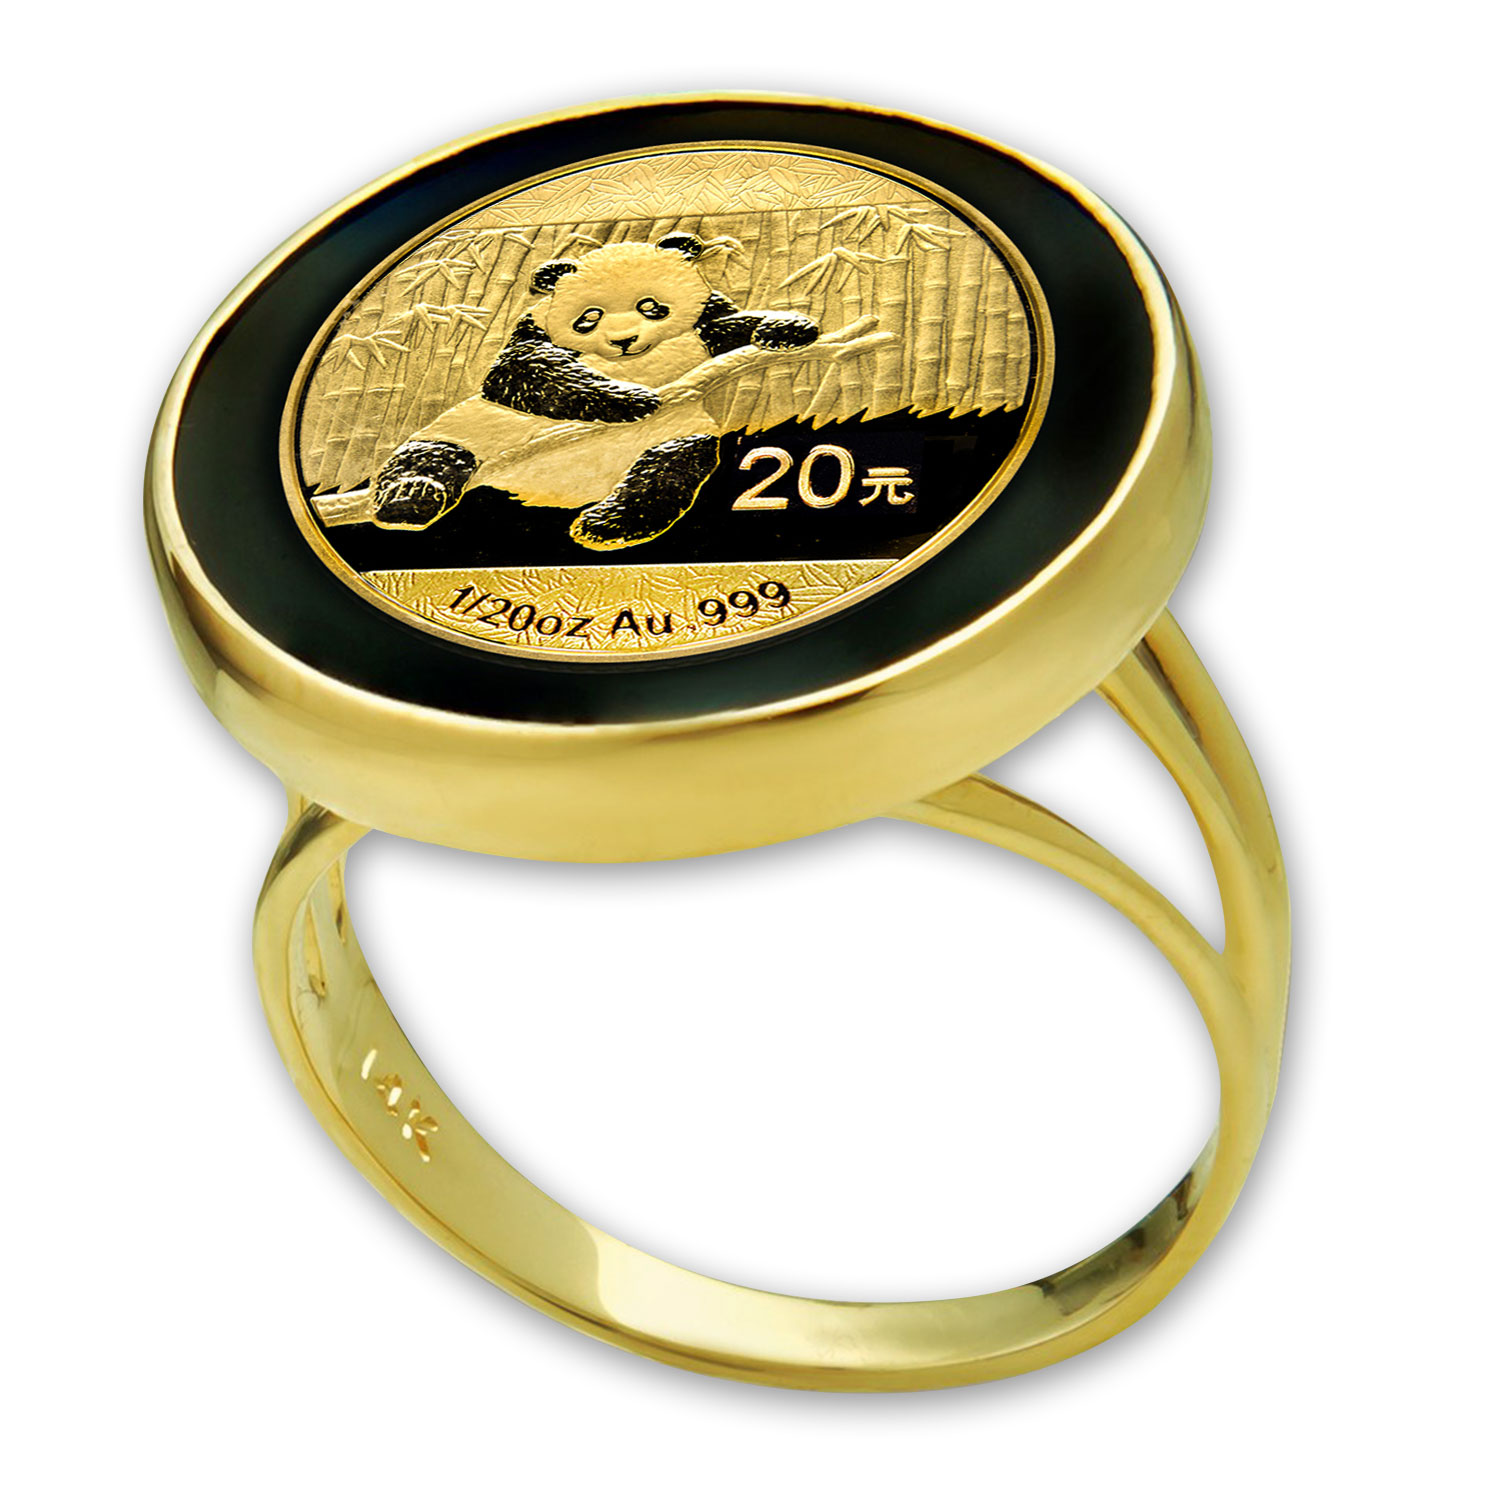 2014 1/20 oz Gold Panda Ring (Polished - Onyx)